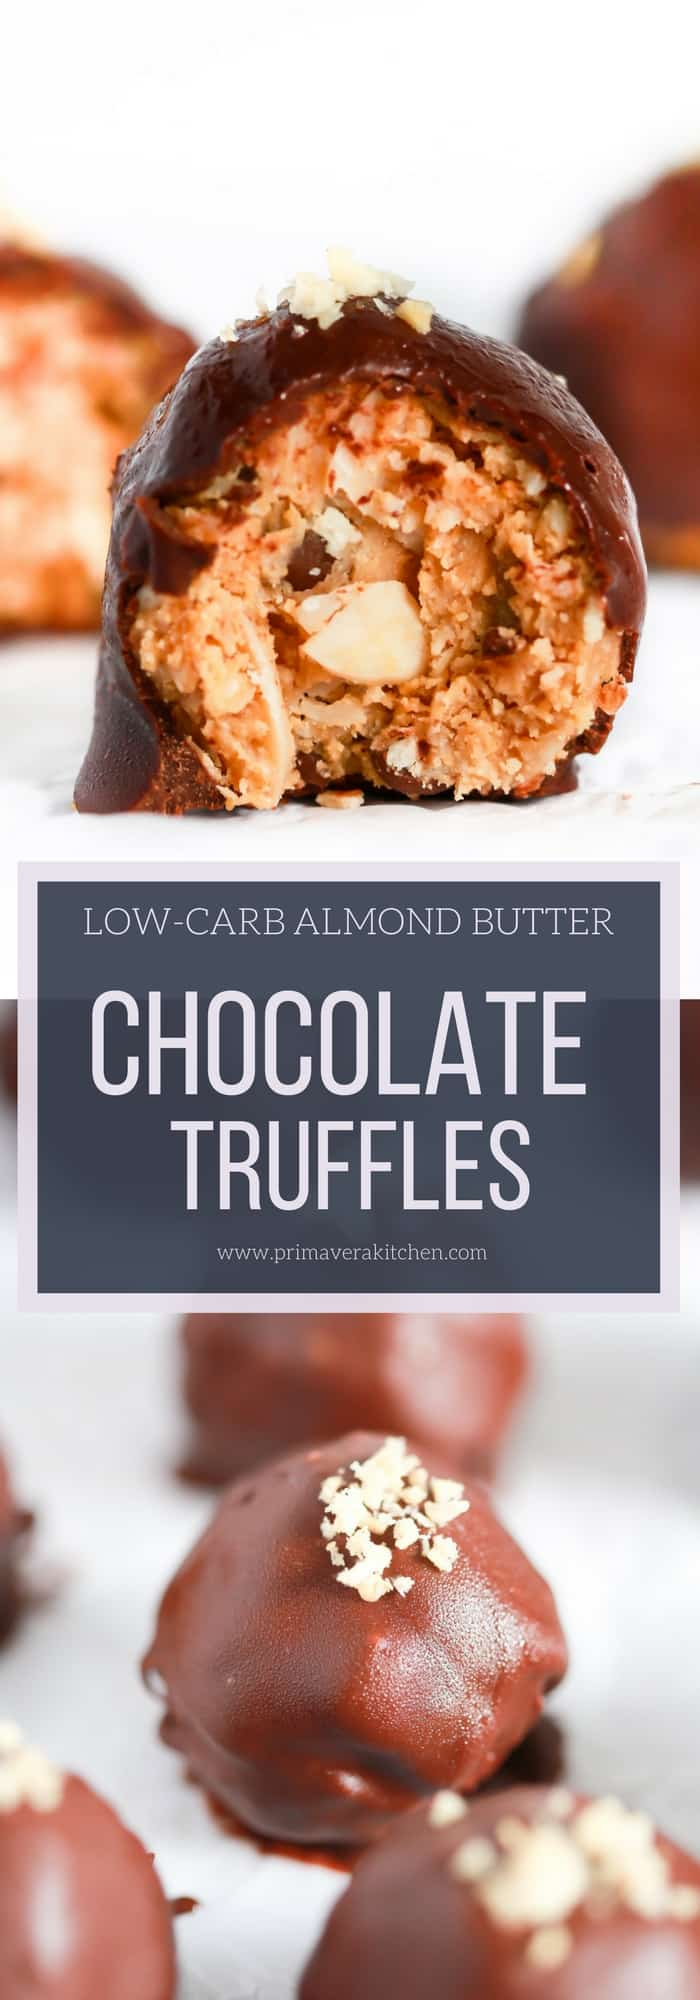 Low-carb-almond-butter-chocolate-truffles Primavera Kitchen